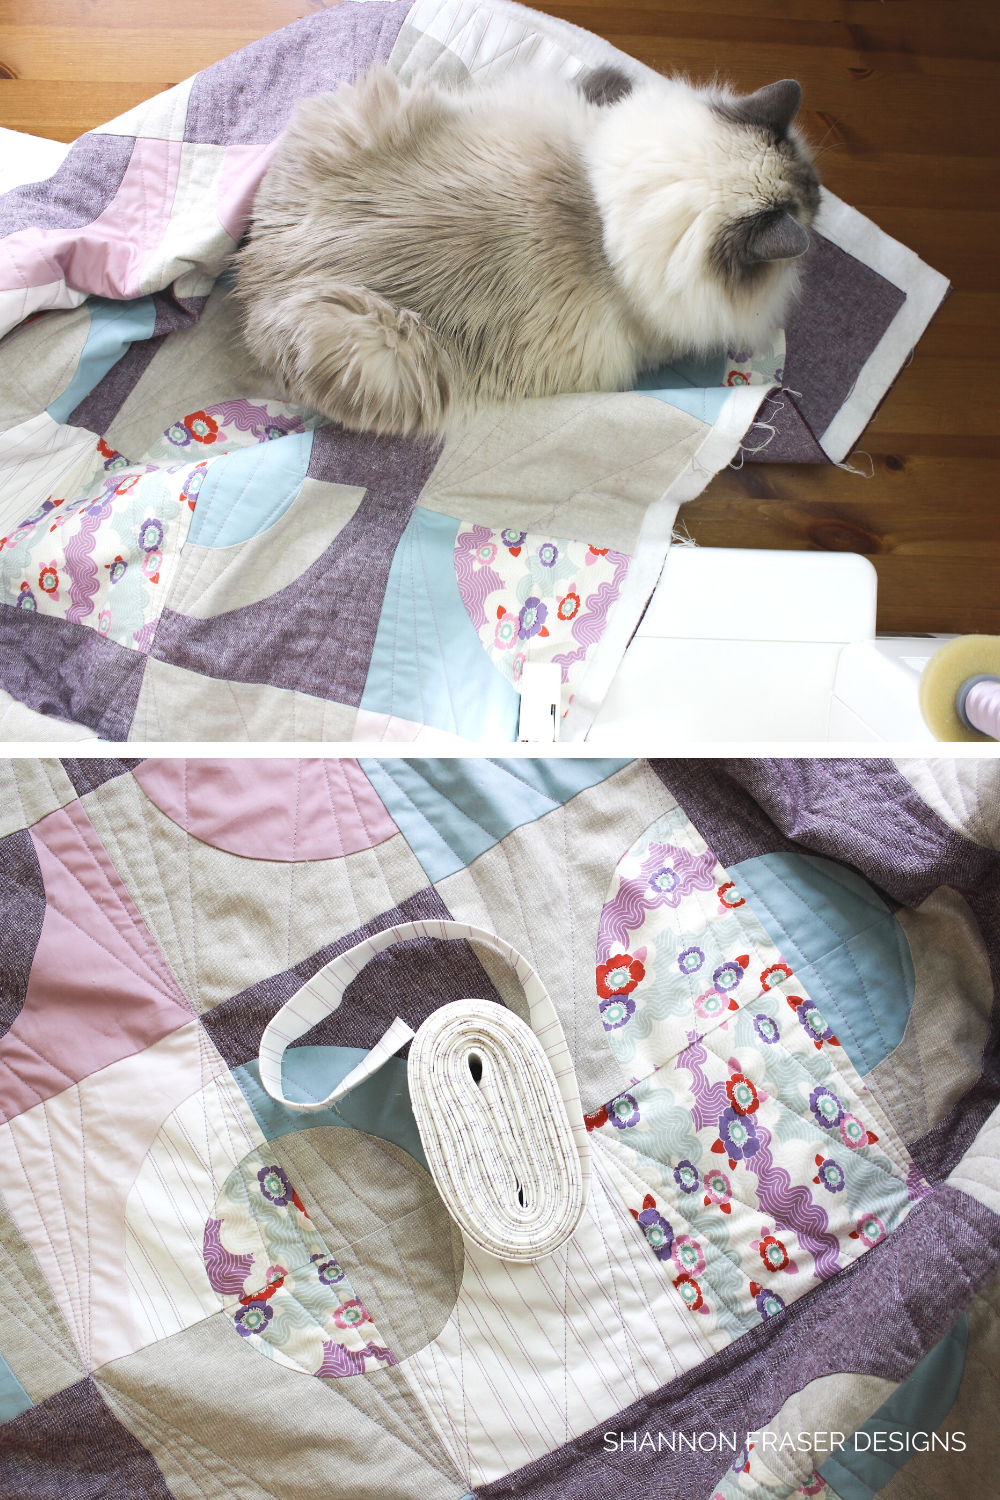 White ragdoll cat on lilac and purple Ecliptic quilt in the process of being machine quilted | 2020 Mid-Year Goals Check-in | Shannon Fraser Designs #catsonquilts